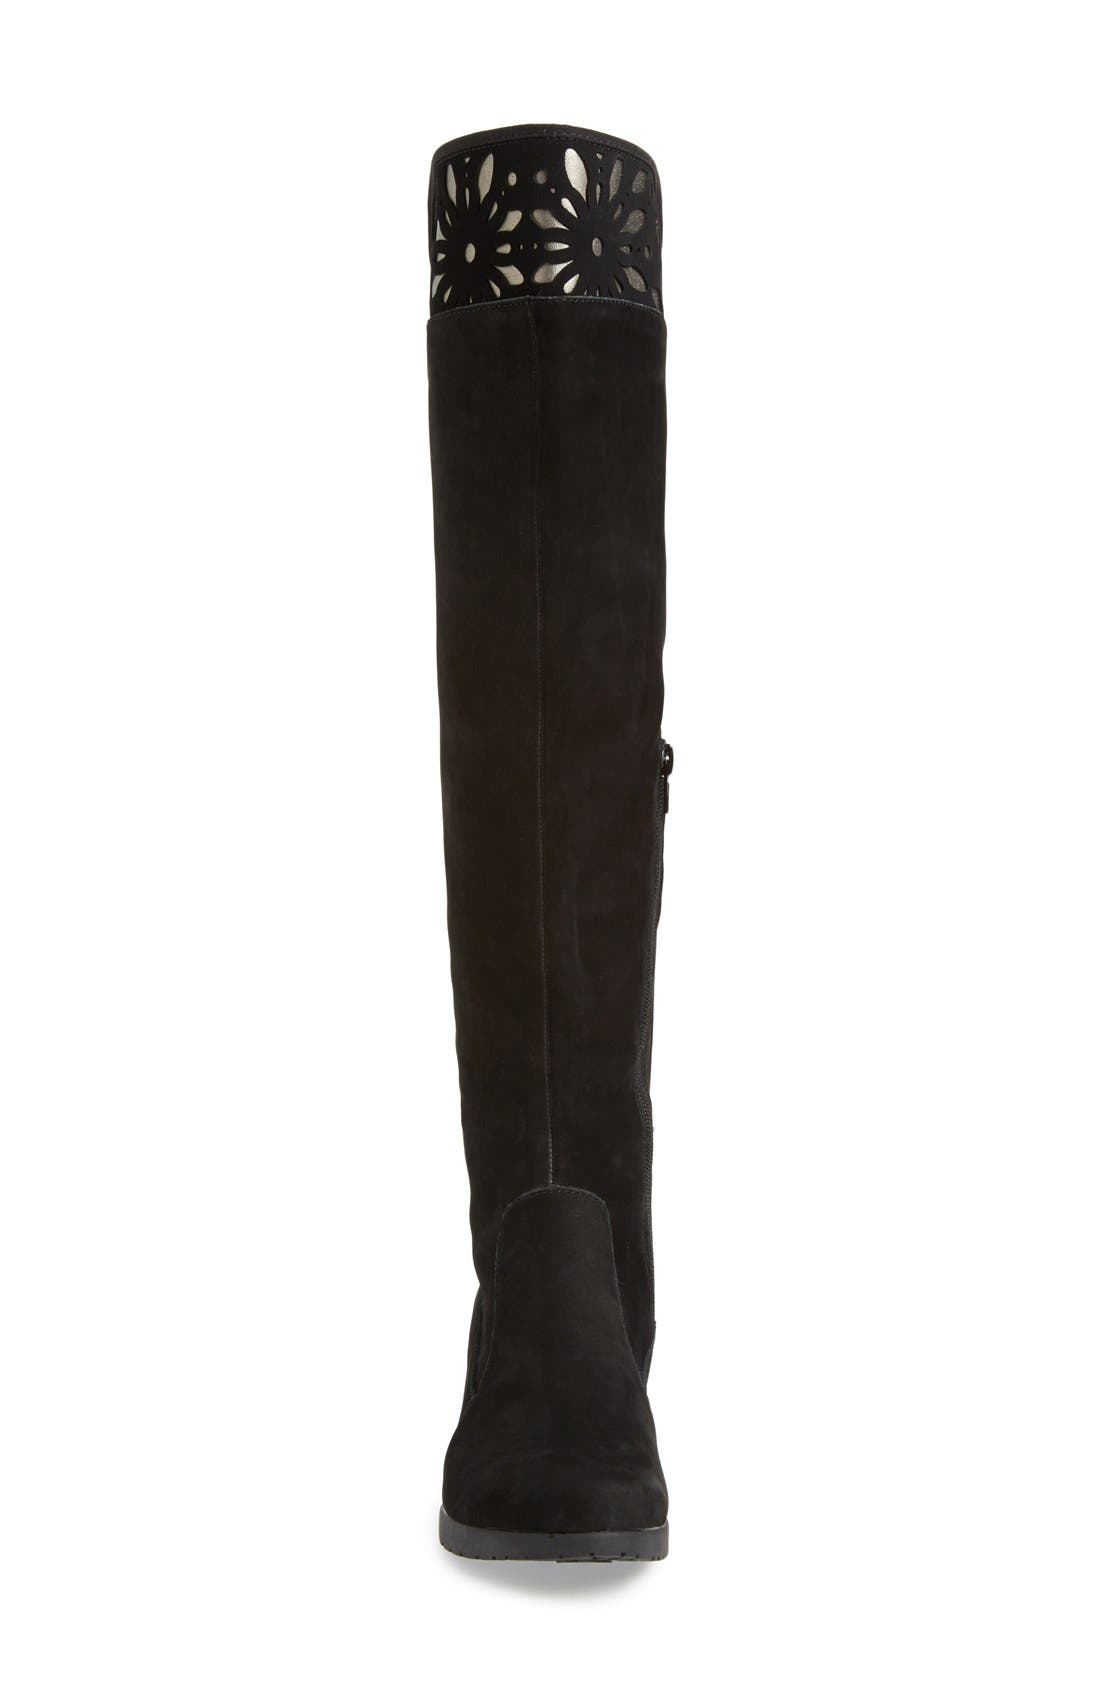 Alternate Image 3  - Jambu 'Natalia' Cutout Detail Water Resistant Over the Knee Boot (Women)